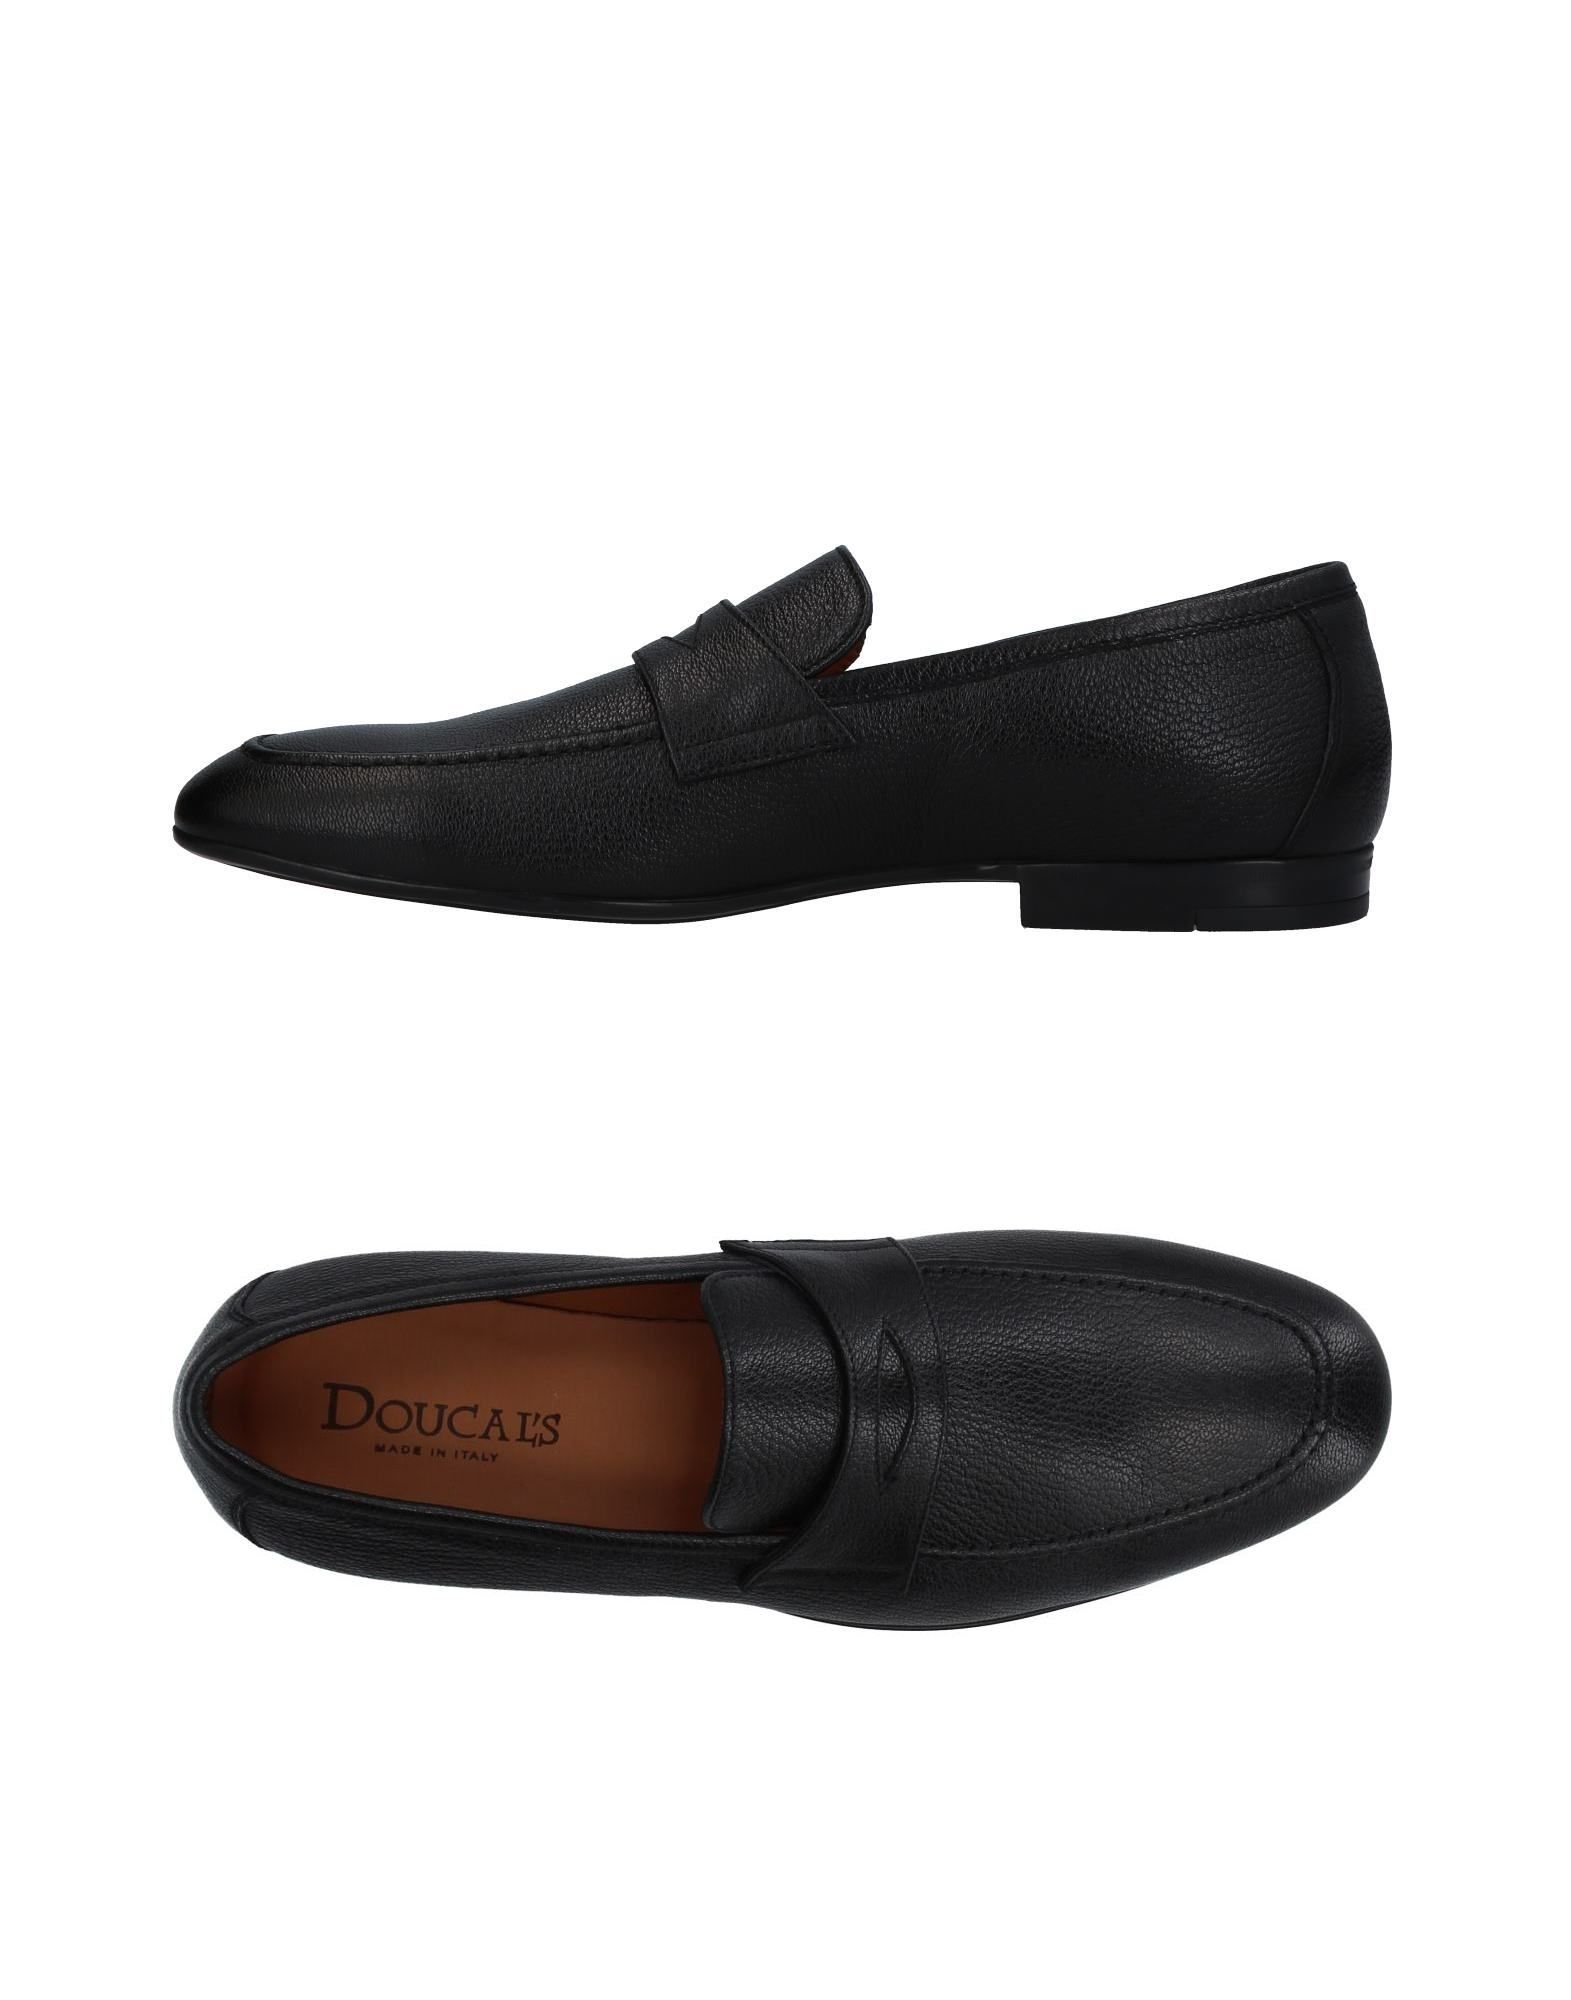 Mocassino Doucals Uomo - Acquista online su